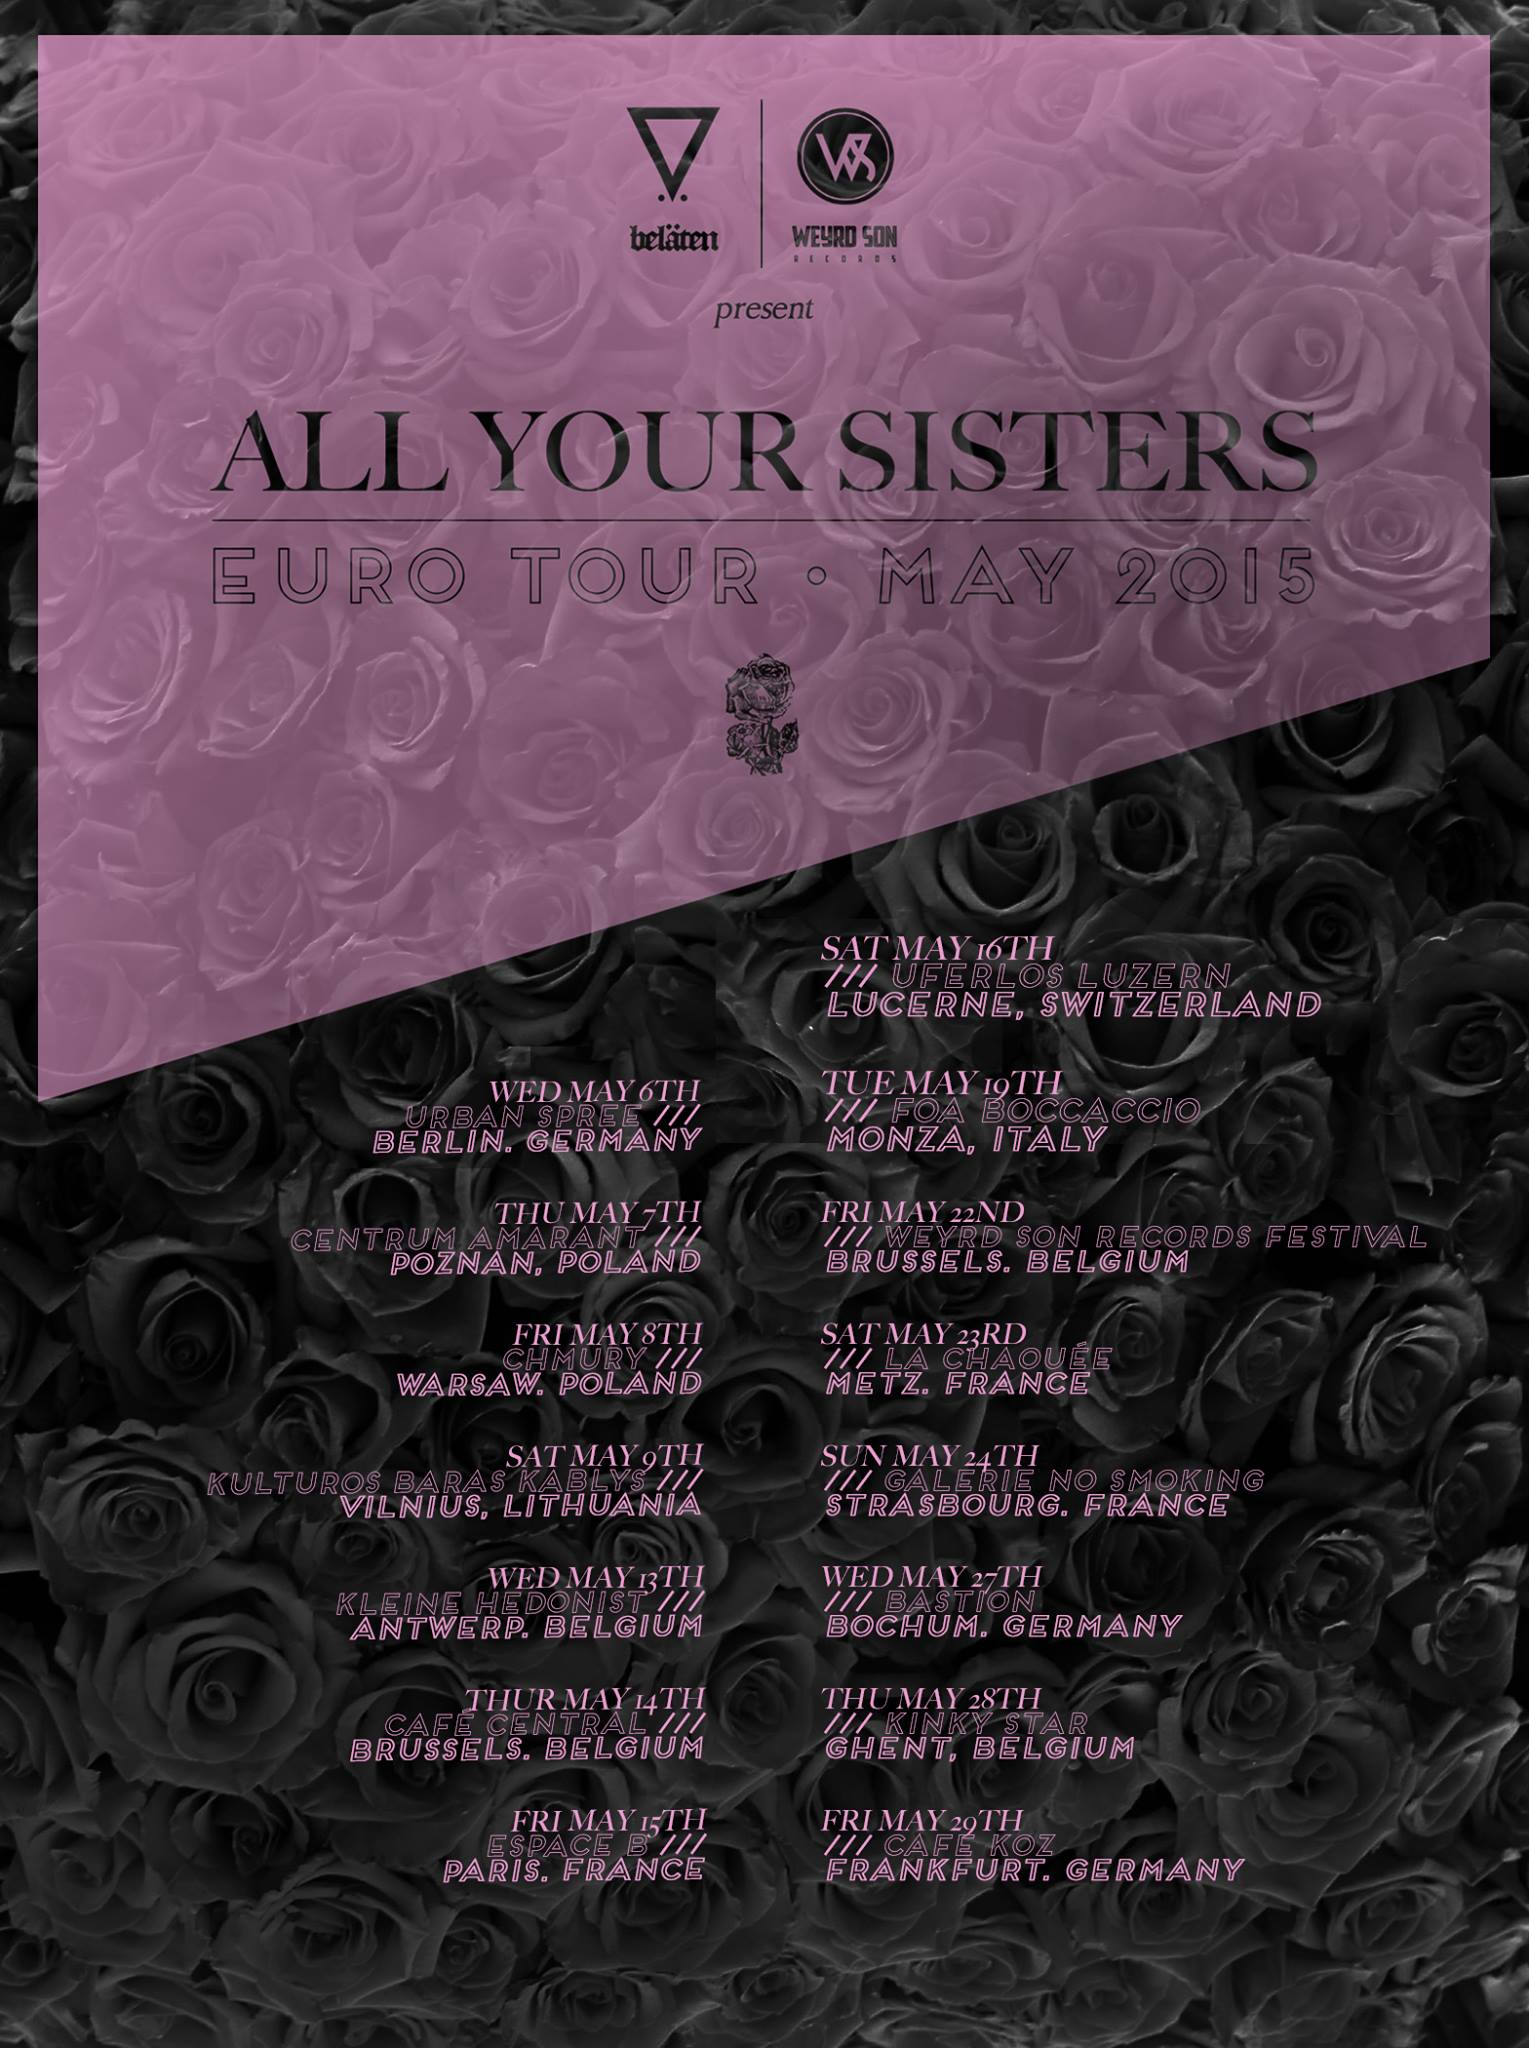 All_Your_Sisters_-_euro_tour_2015